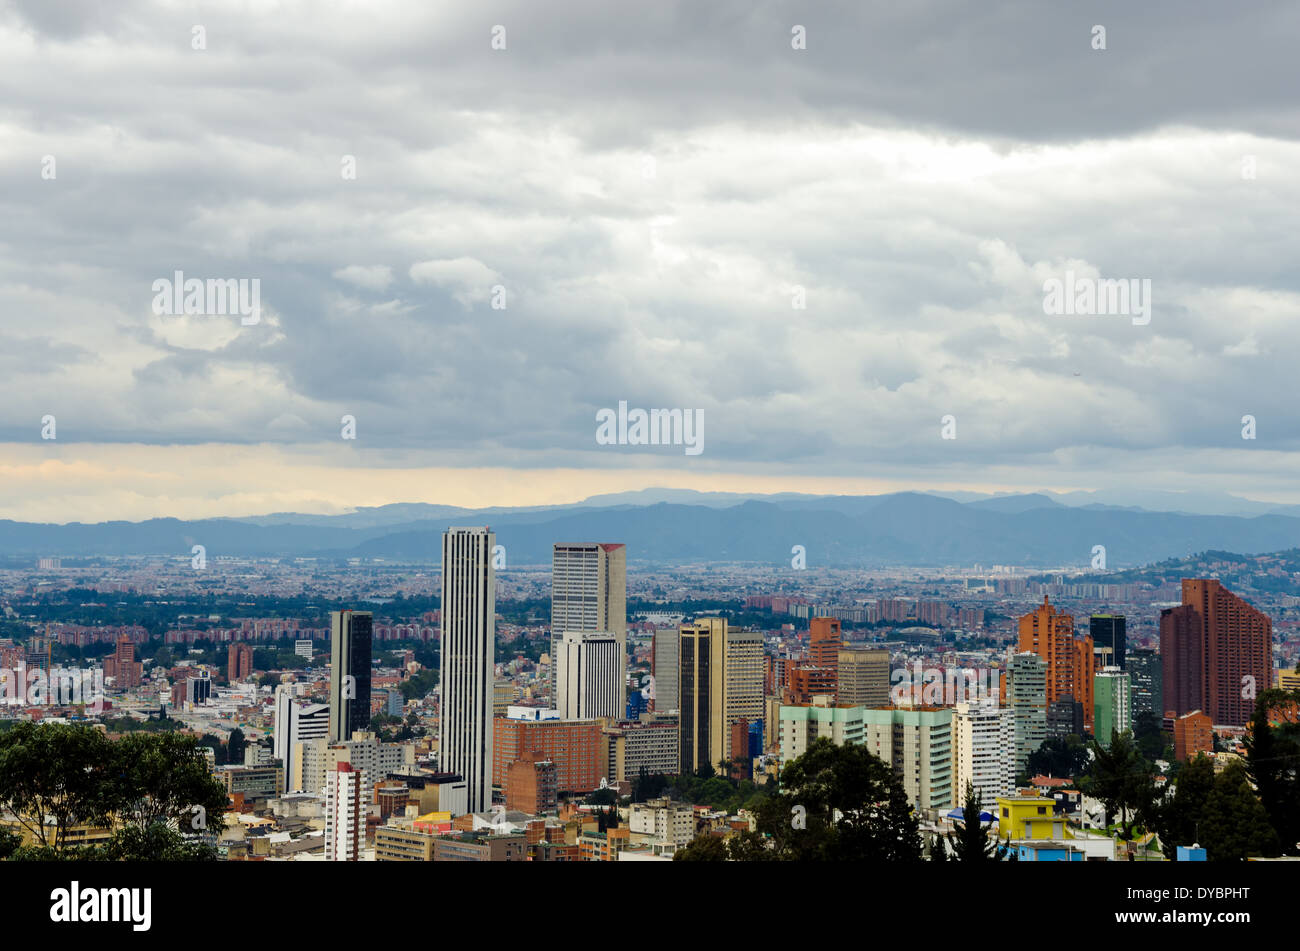 Skyscrapers in downtown Bogota, Colombia - Stock Image